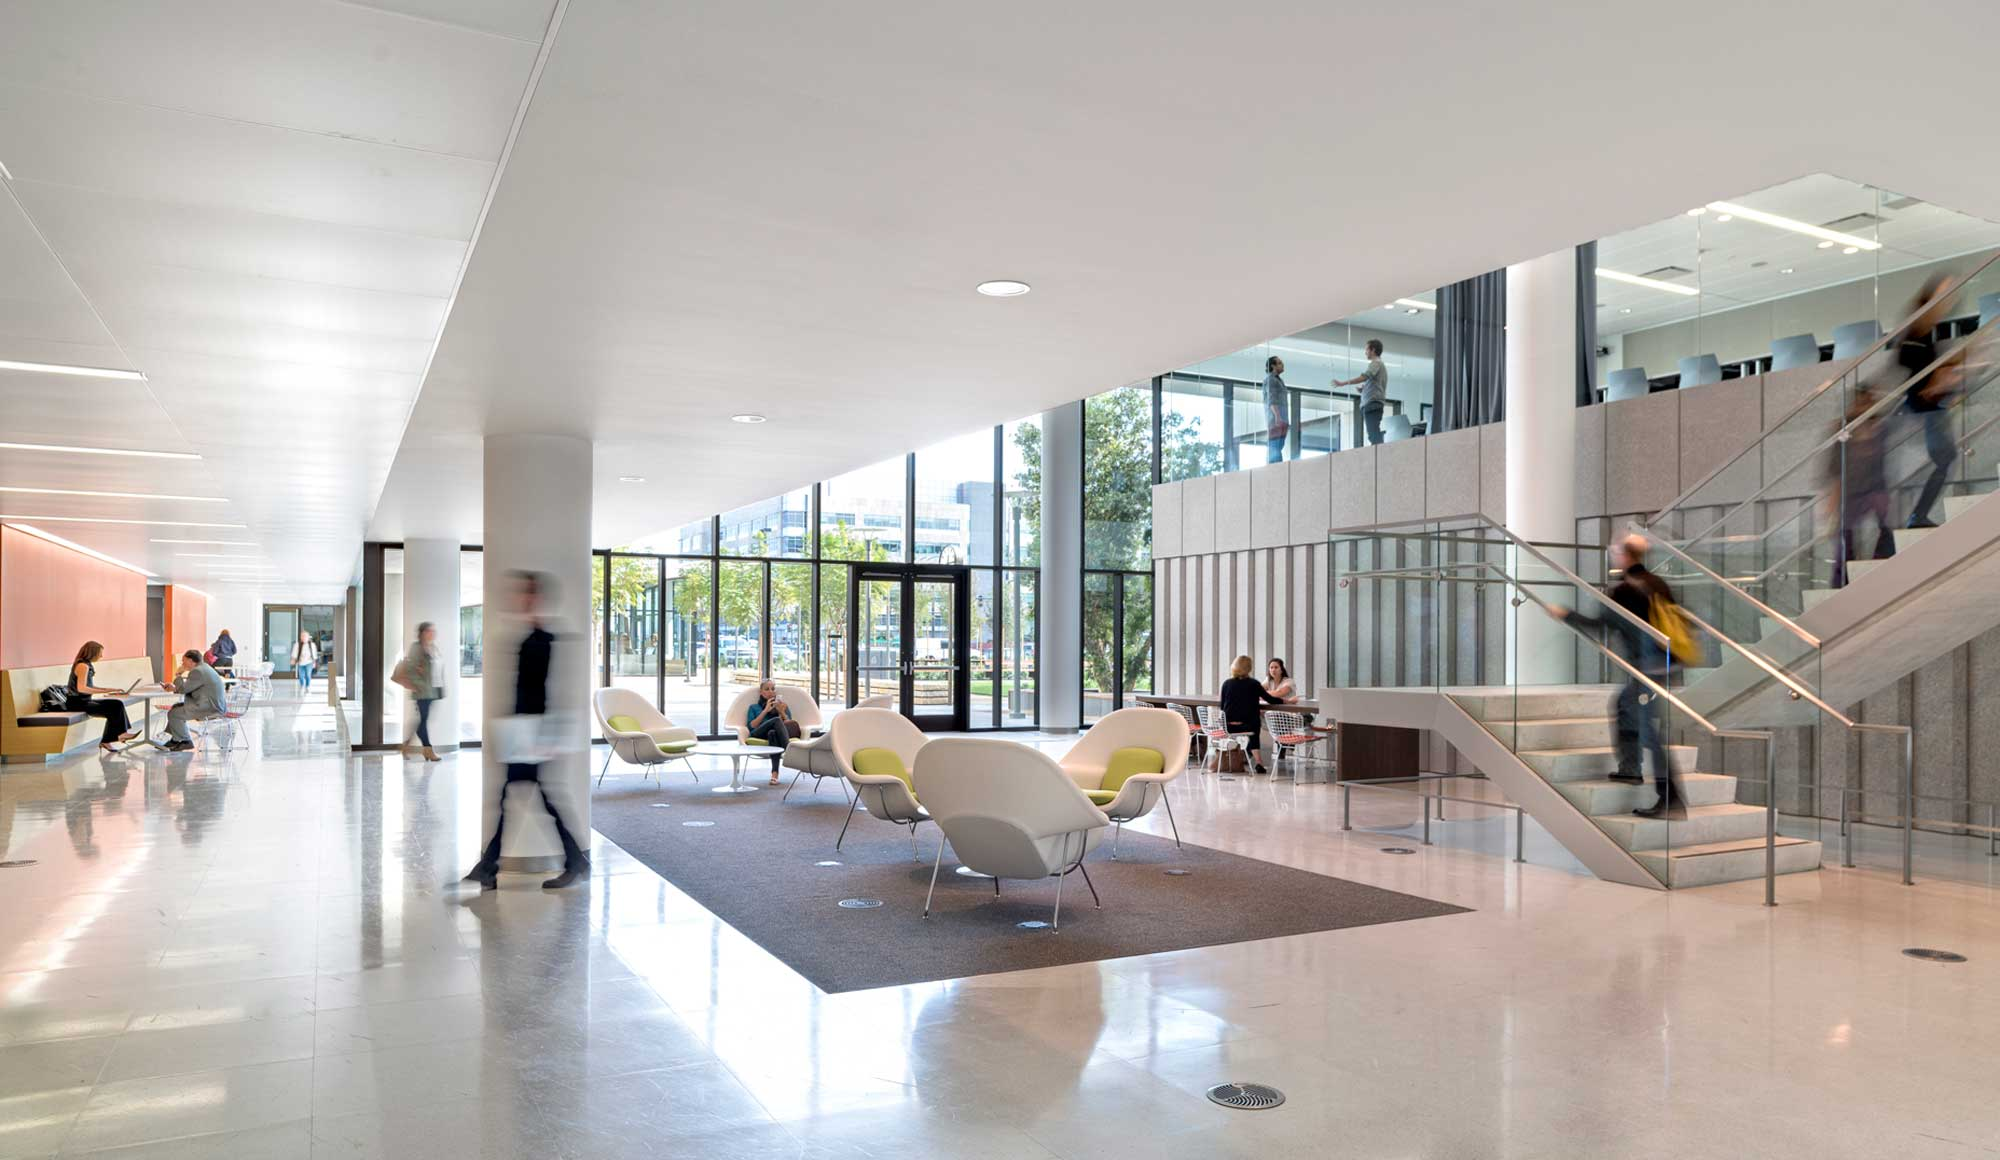 What Is Efficiency >> UCSF, Mission Hall: Global Health & Clinical Sciences Building